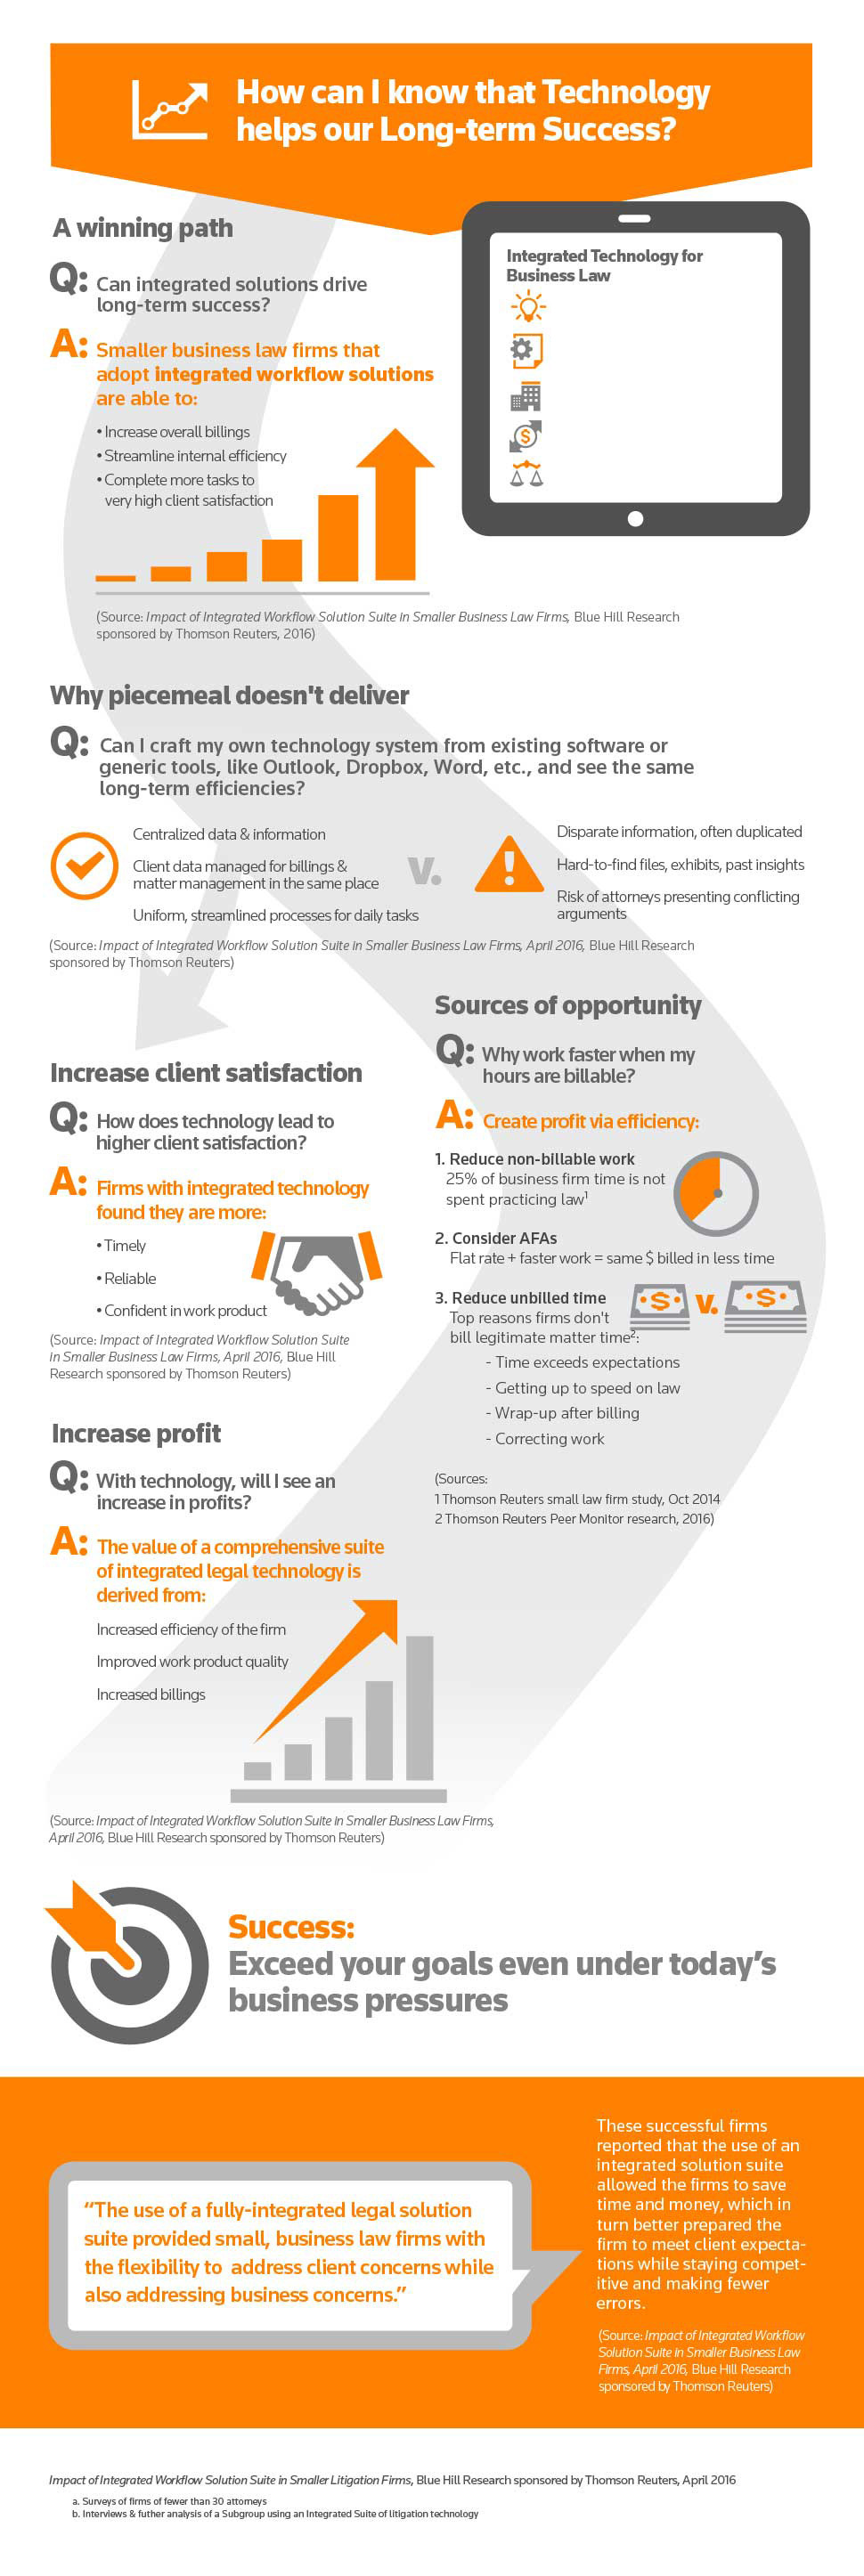 Infographic: Small business law firms technology ROI